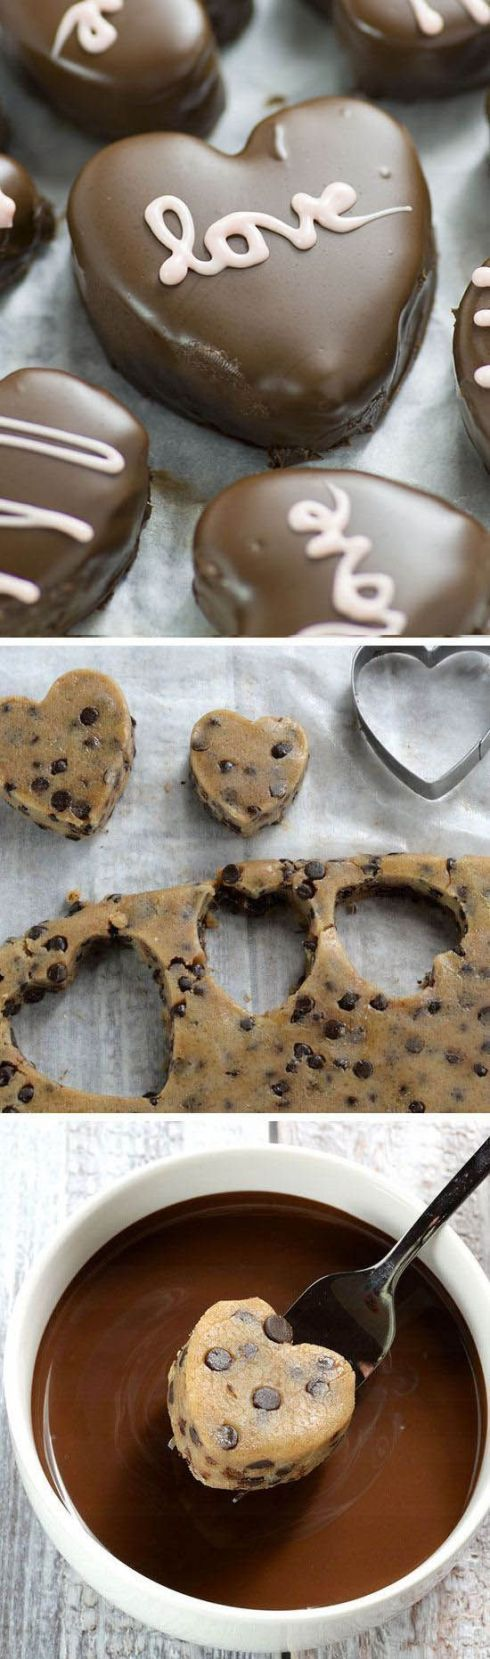 Perfect Valentines day treat - Chocolate Chip Cookie Dough Valentine's Hearts are irresistible cupid inspired dessert.